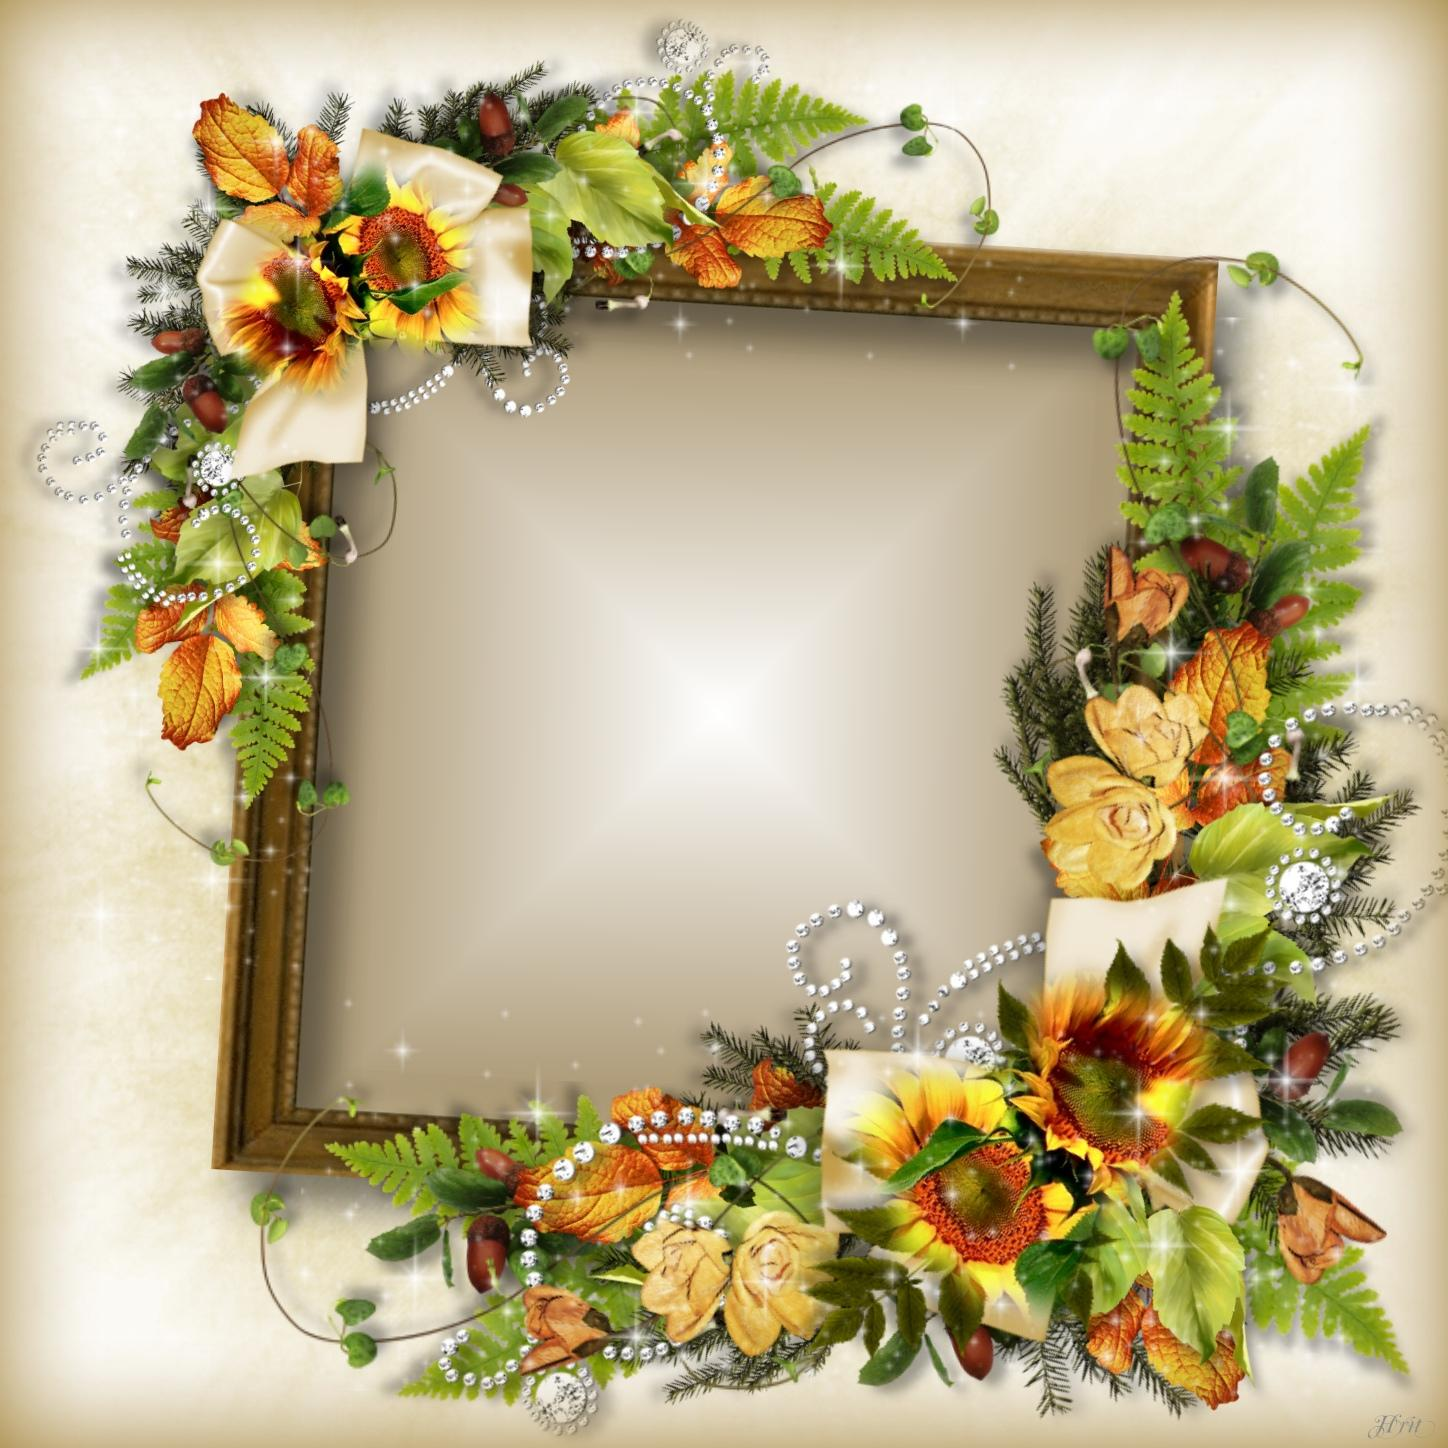 Imikimi Zo - Fall Frames - Have a beautiful autumn weekend #Hrit ...